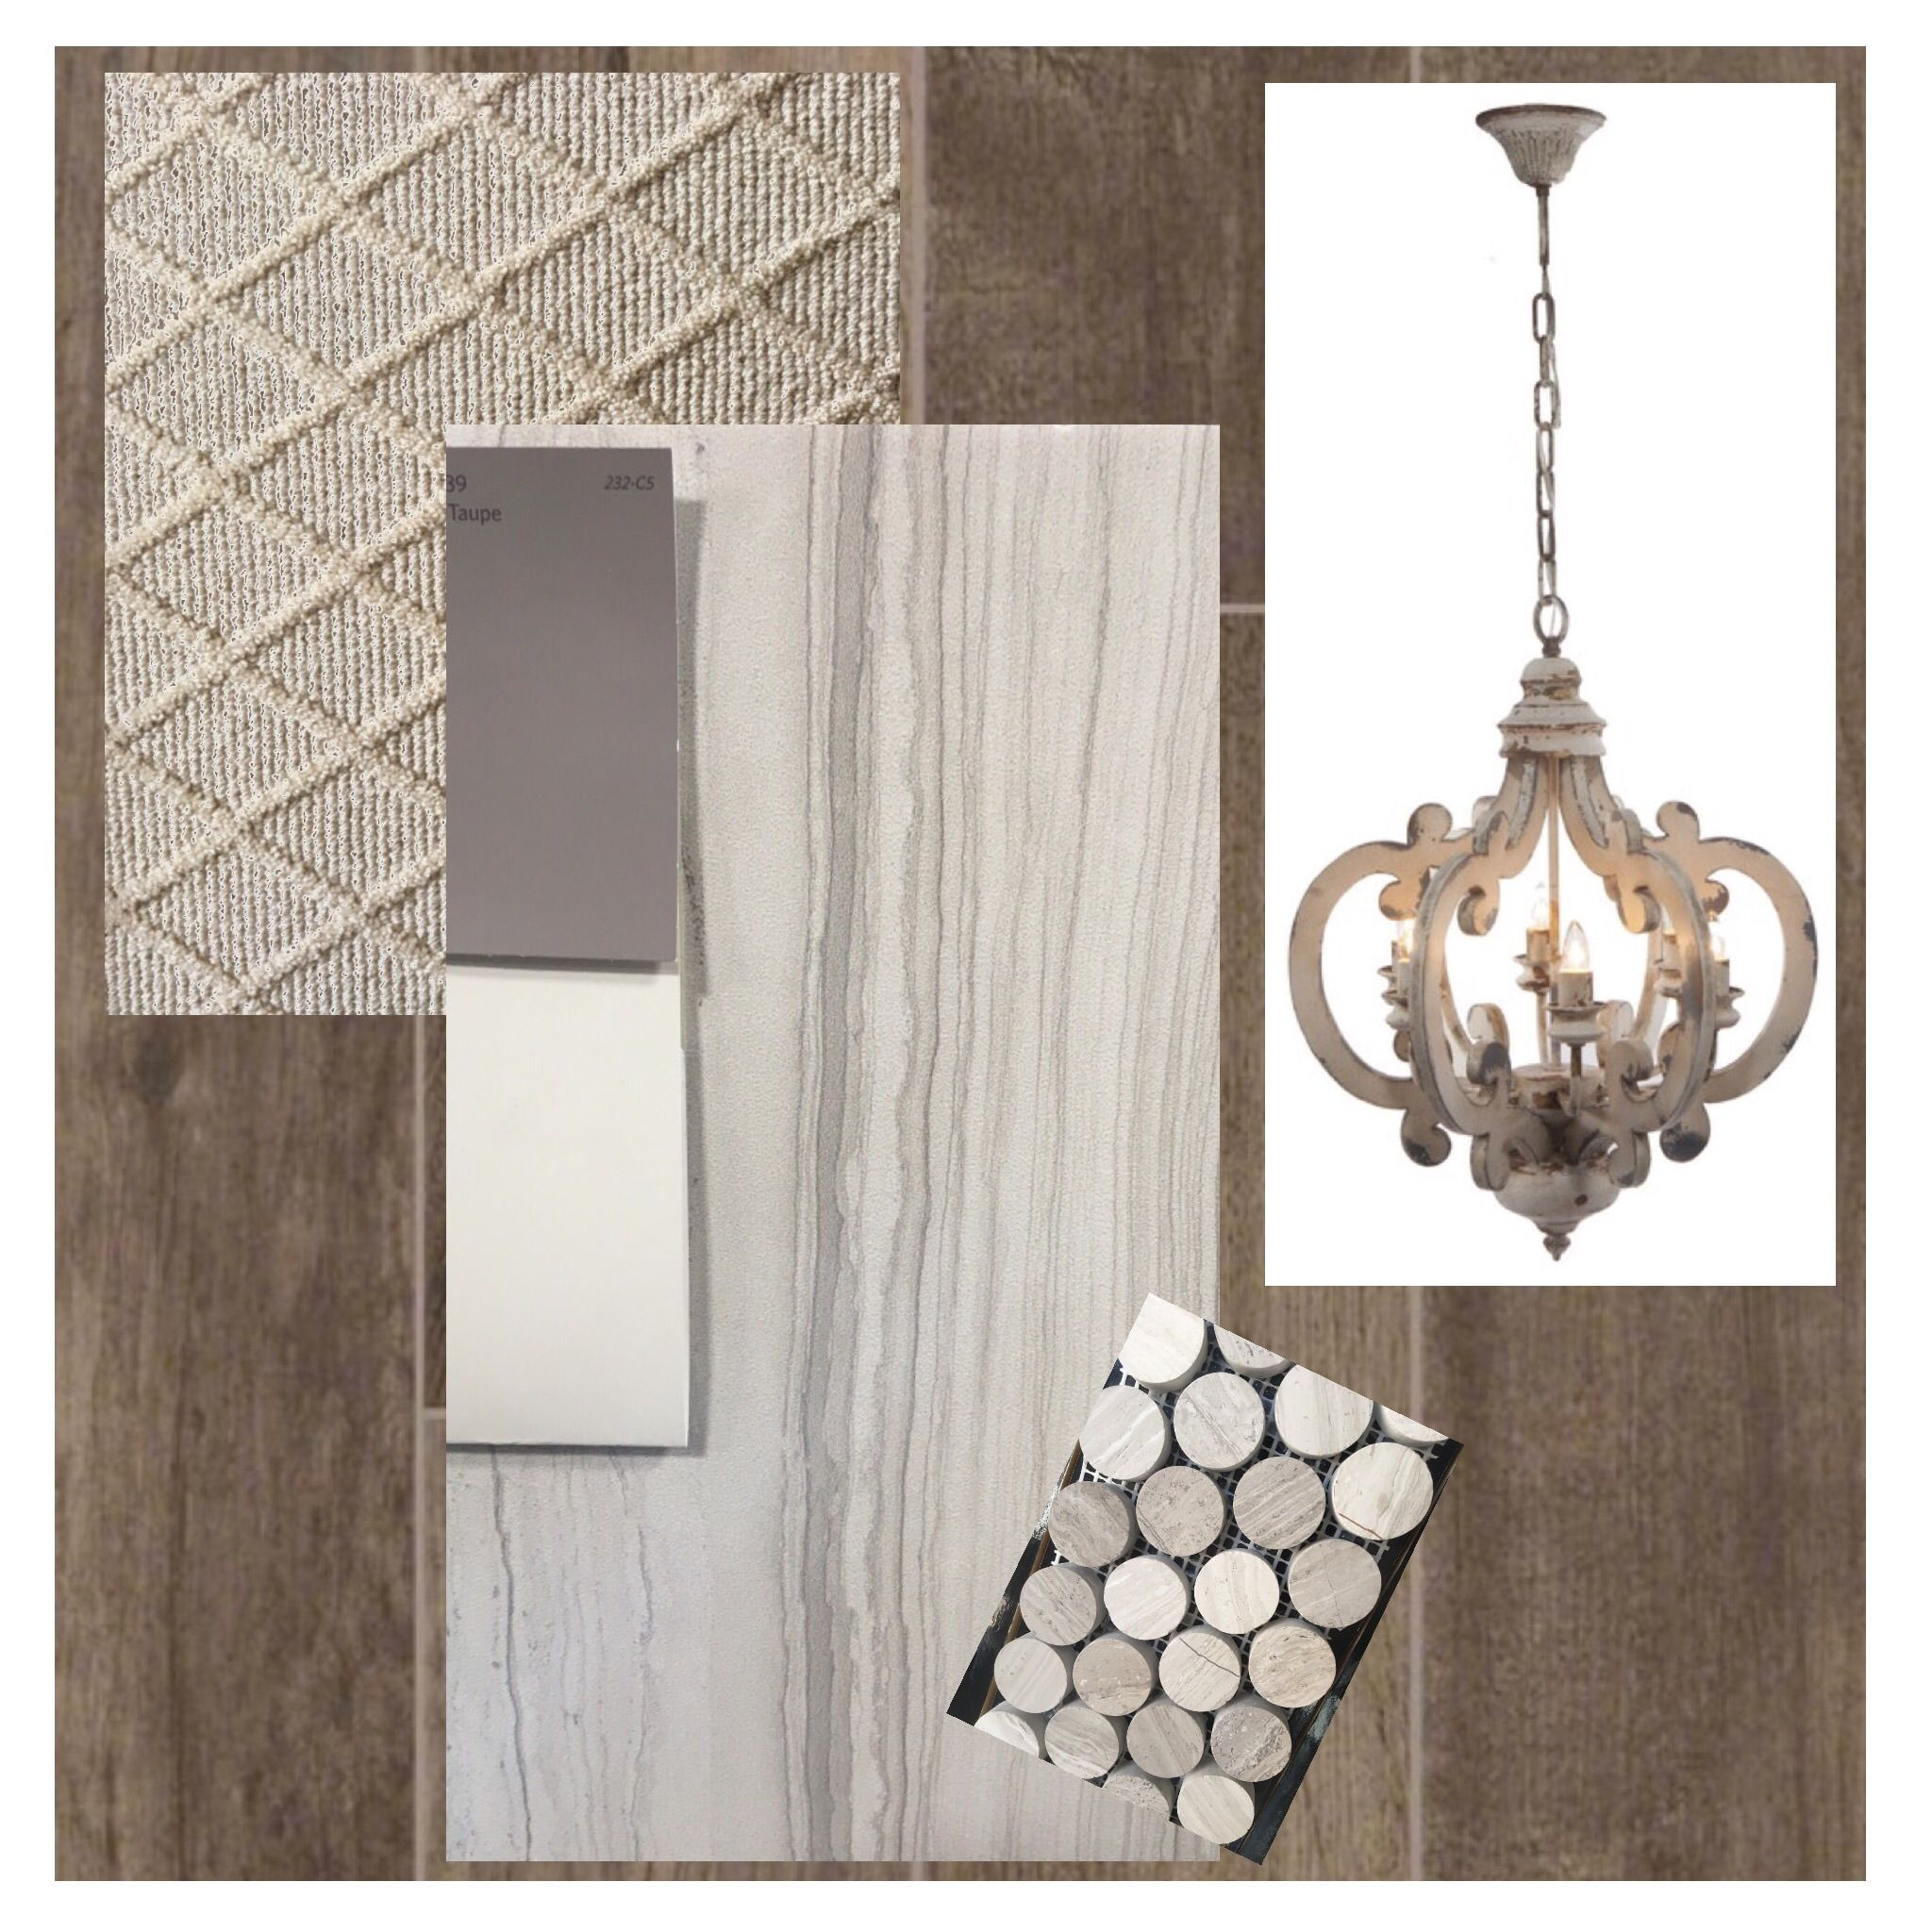 simply chic | porcelain tile, taupe and exotic